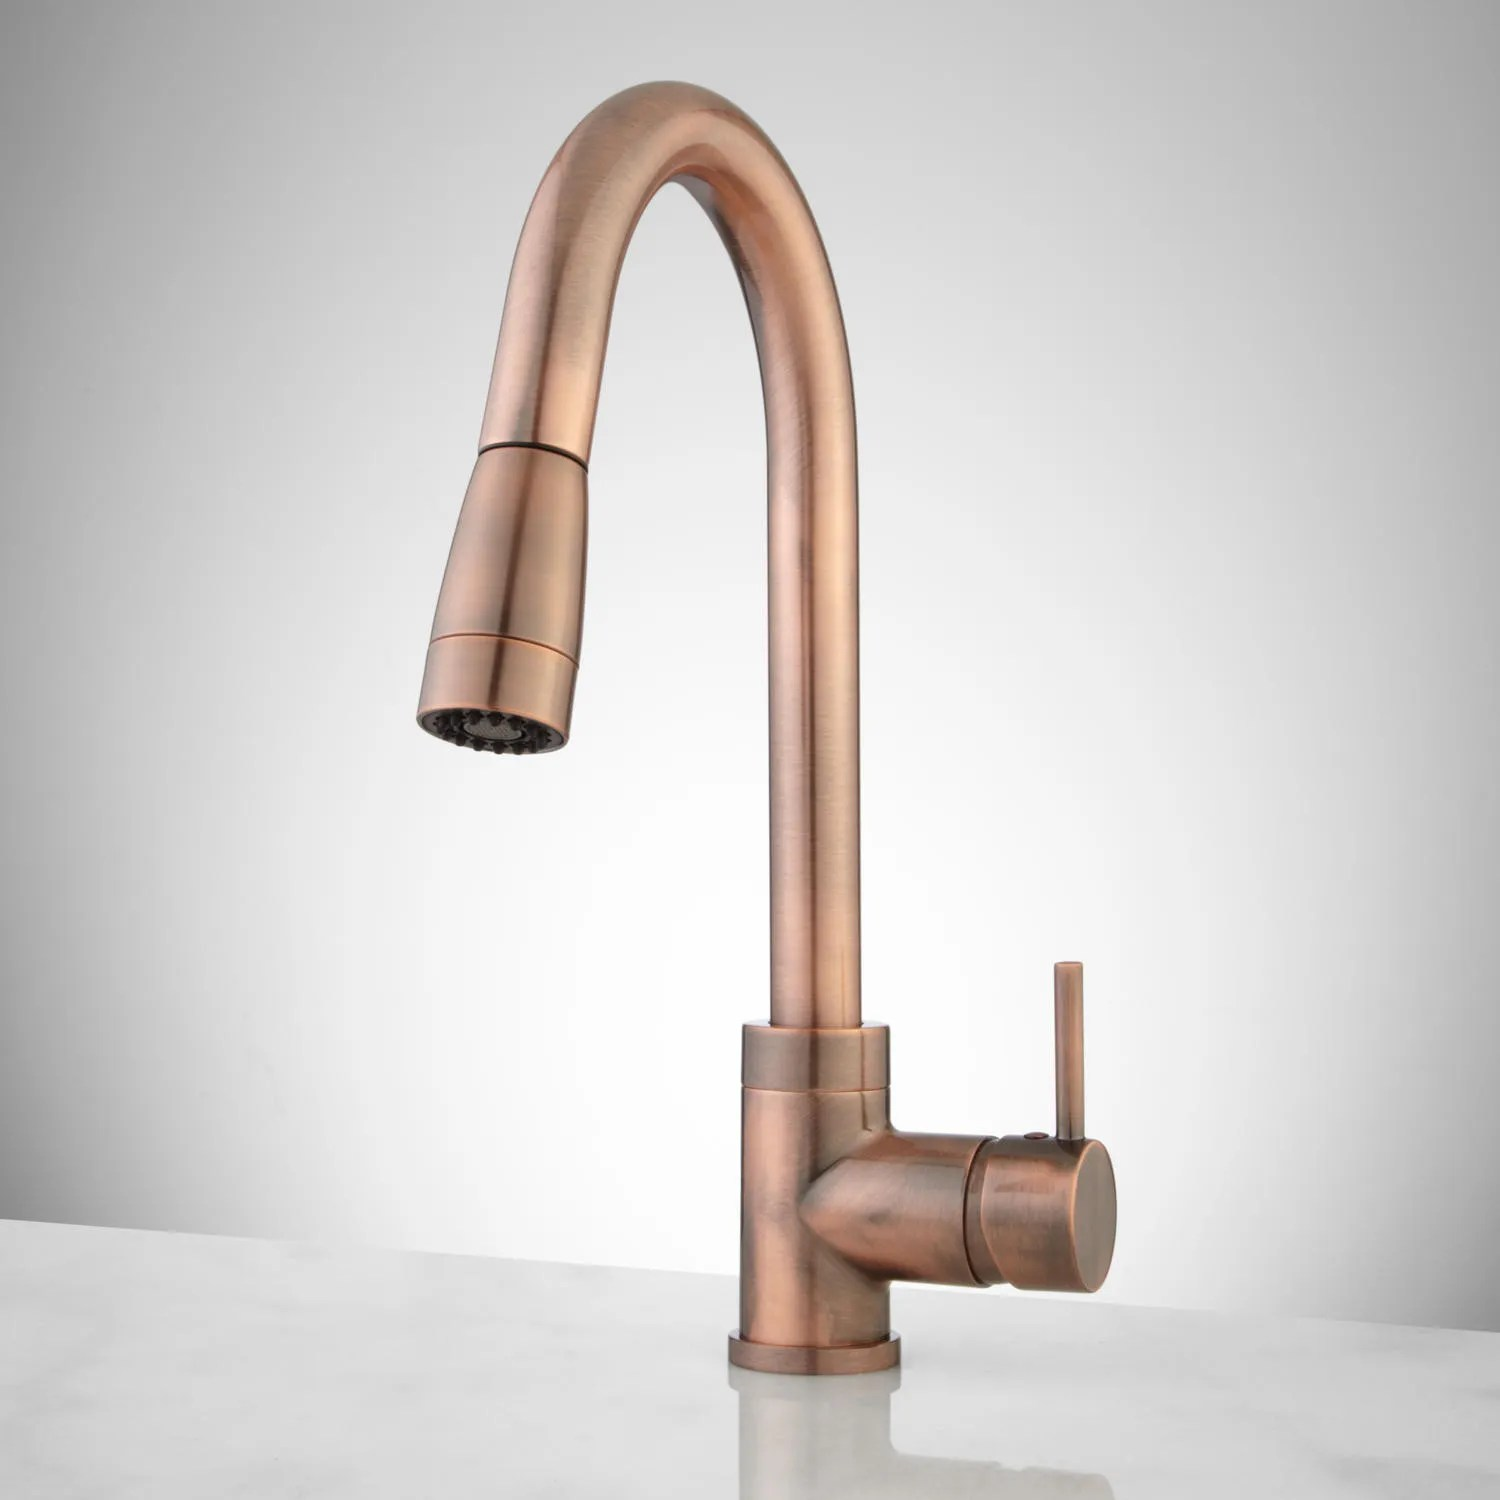 finite single hole kitchen faucet with swivel spout and pull down sprayer copper kitchen faucet Antique Copper